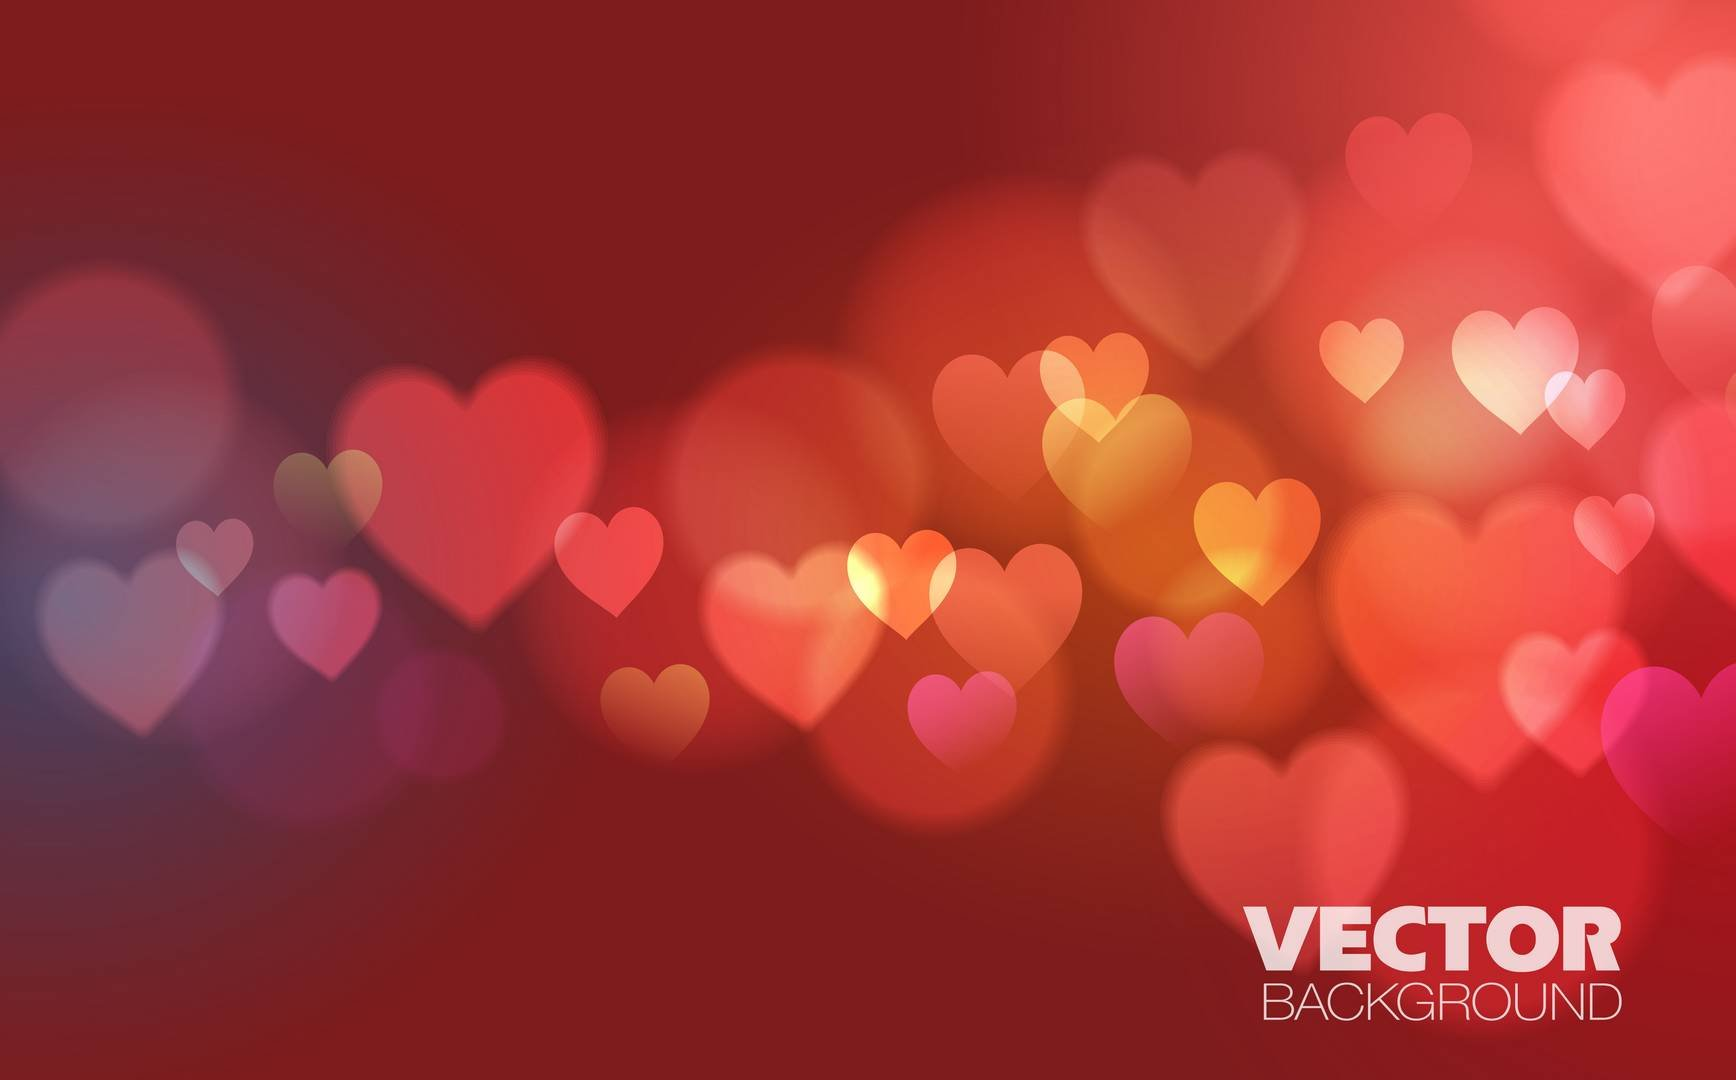 ll probably love these valentine day vector backgrounds 1736x1080